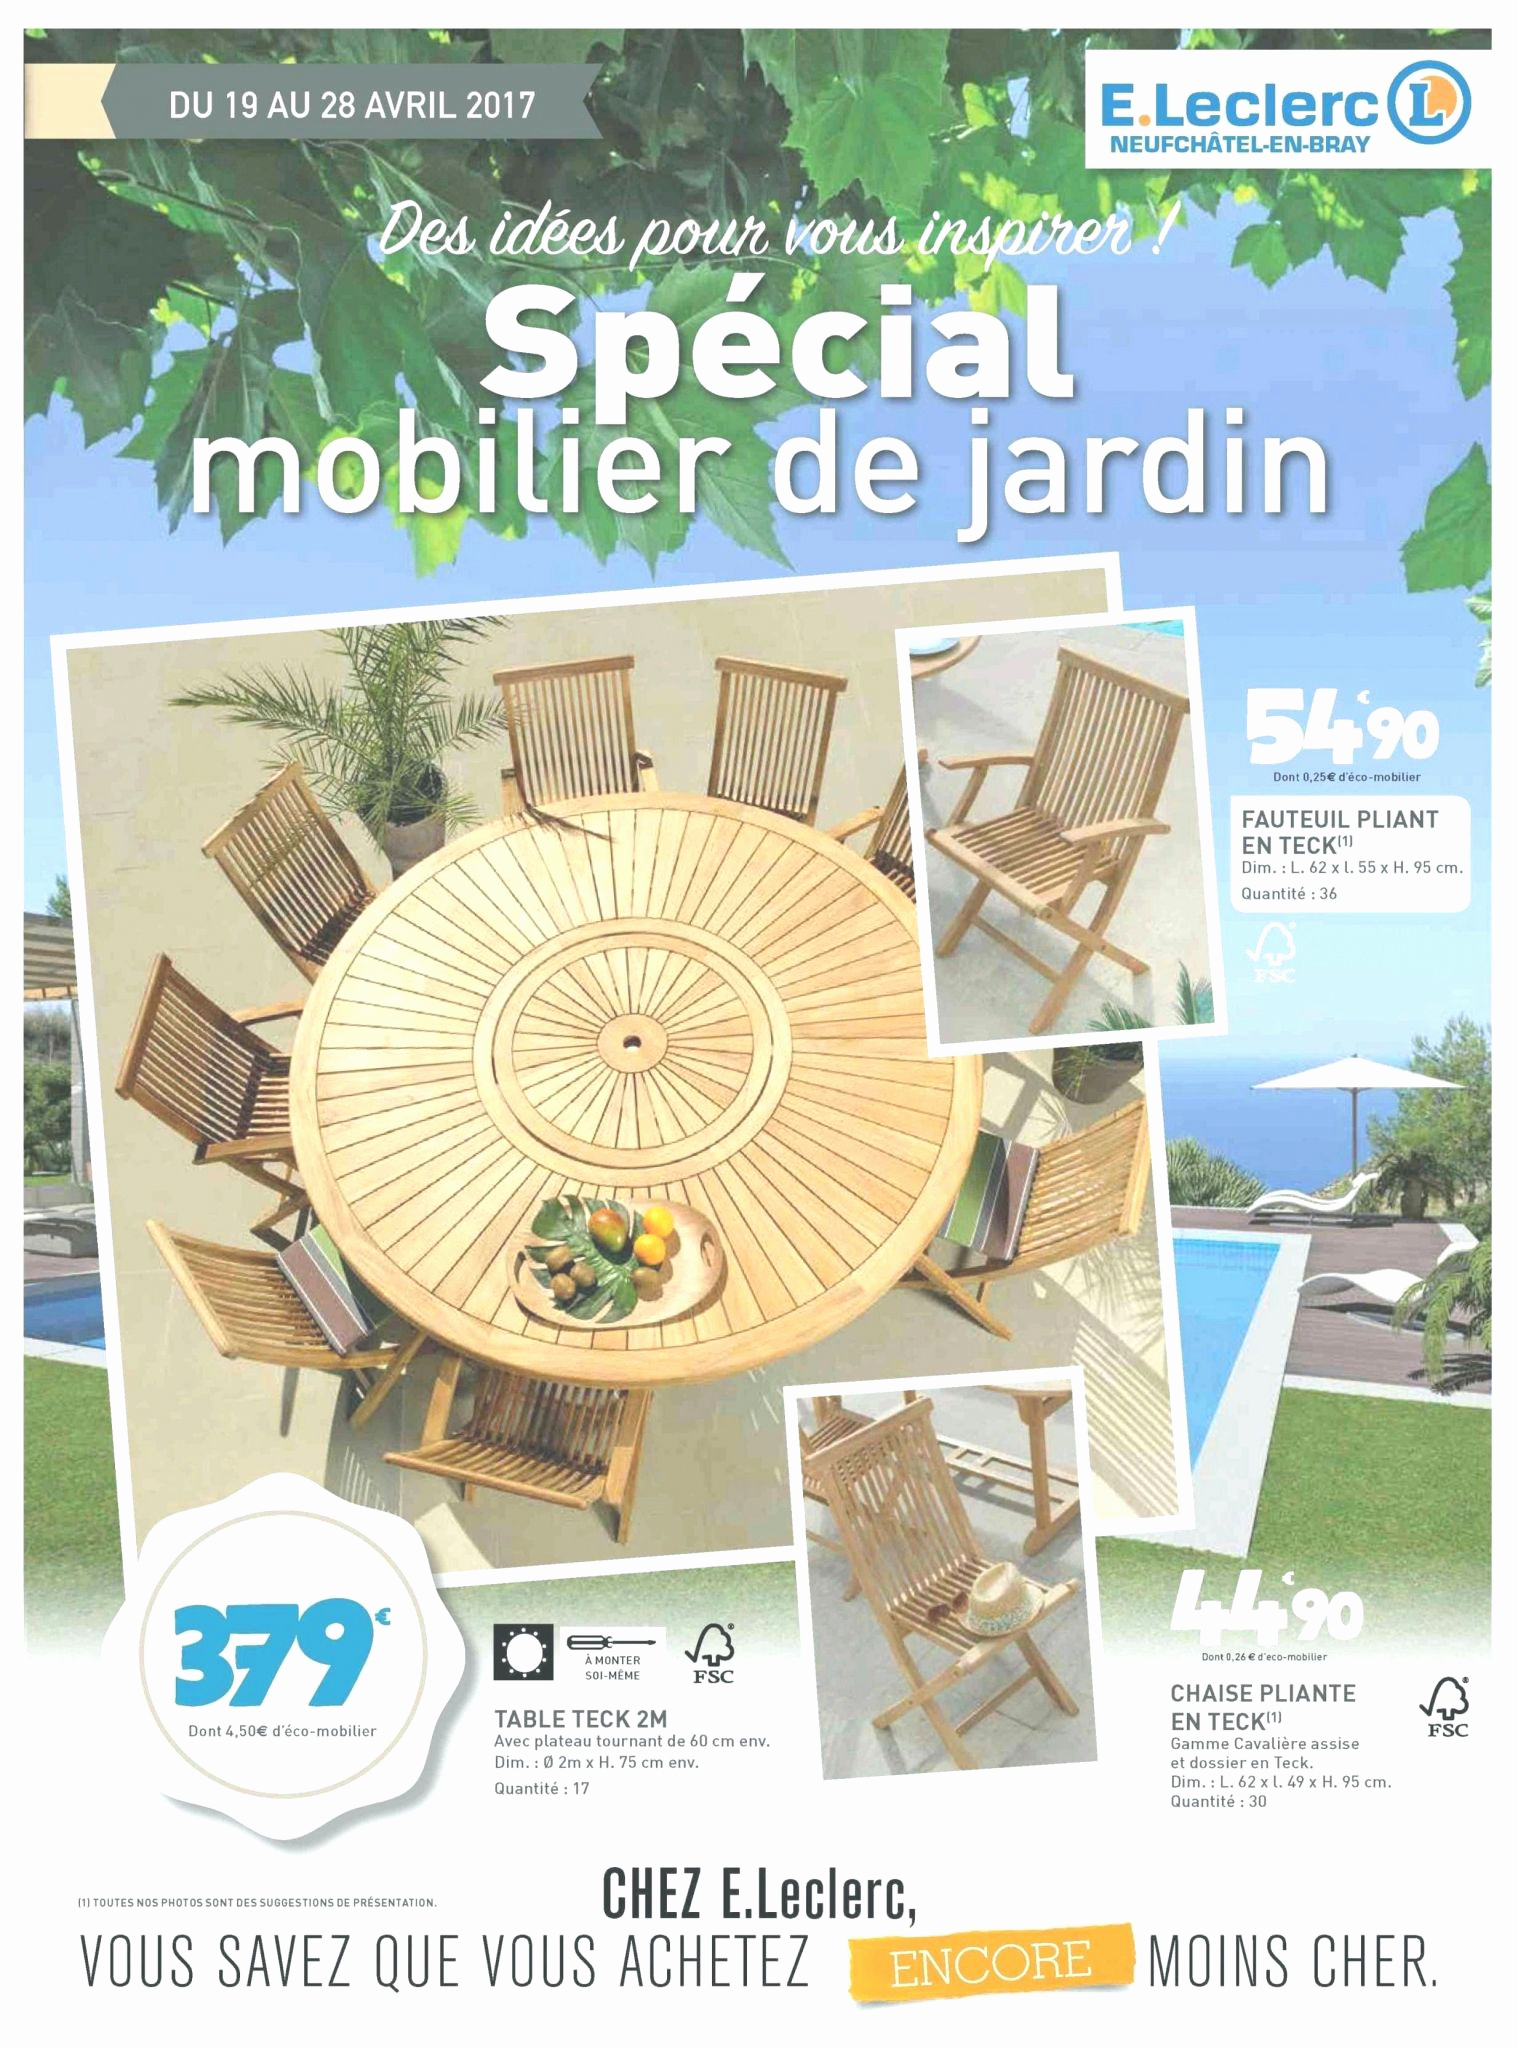 Salon En Teck Élégant Salon De Jardin Leclerc Catalogue 2017 Le Meilleur De Table Of 27 Luxe Salon En Teck